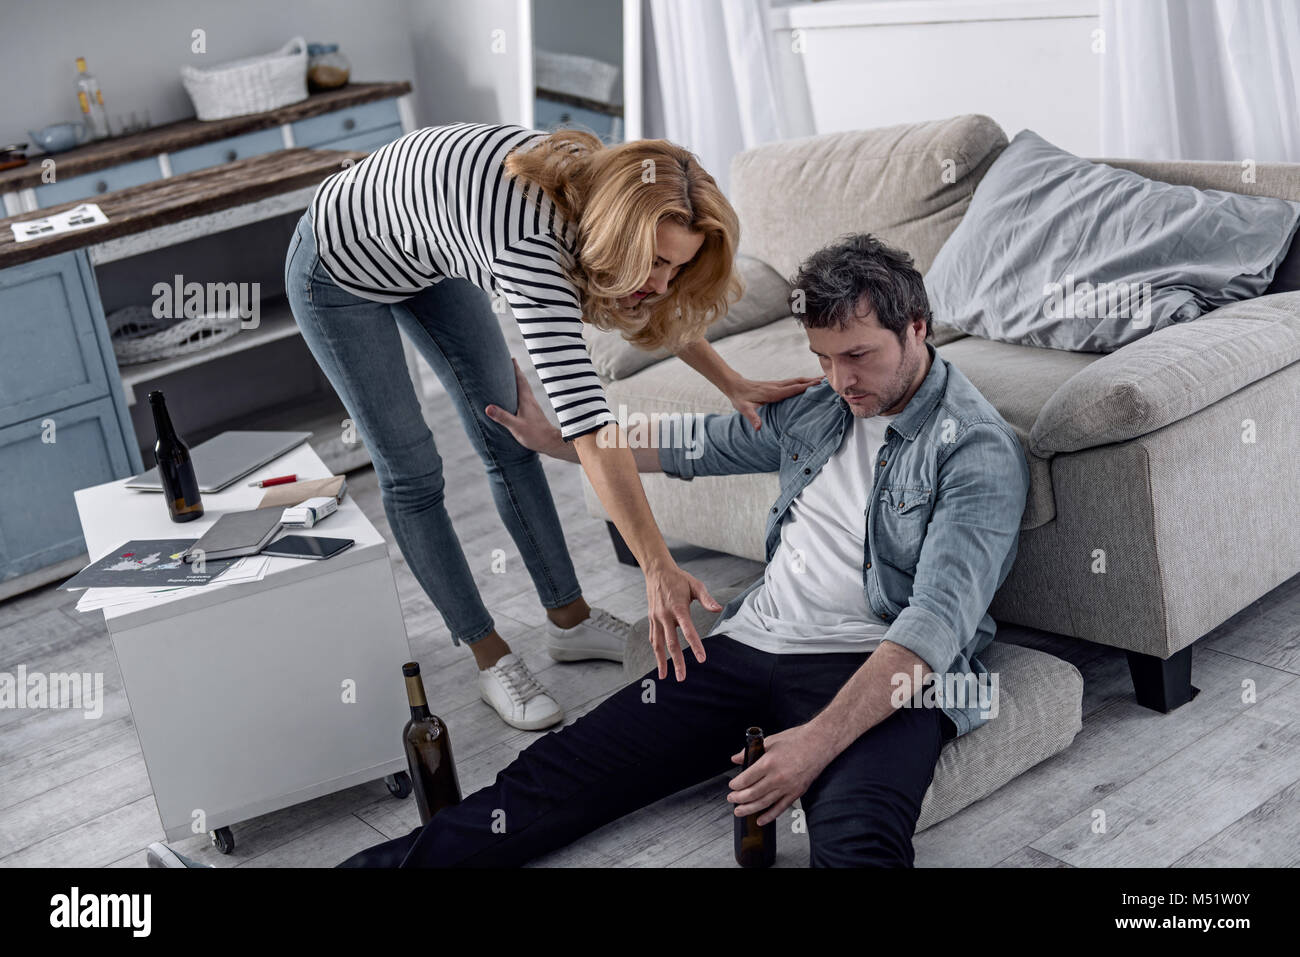 Alcohol addicted man drinking and pushing his wife - Stock Image